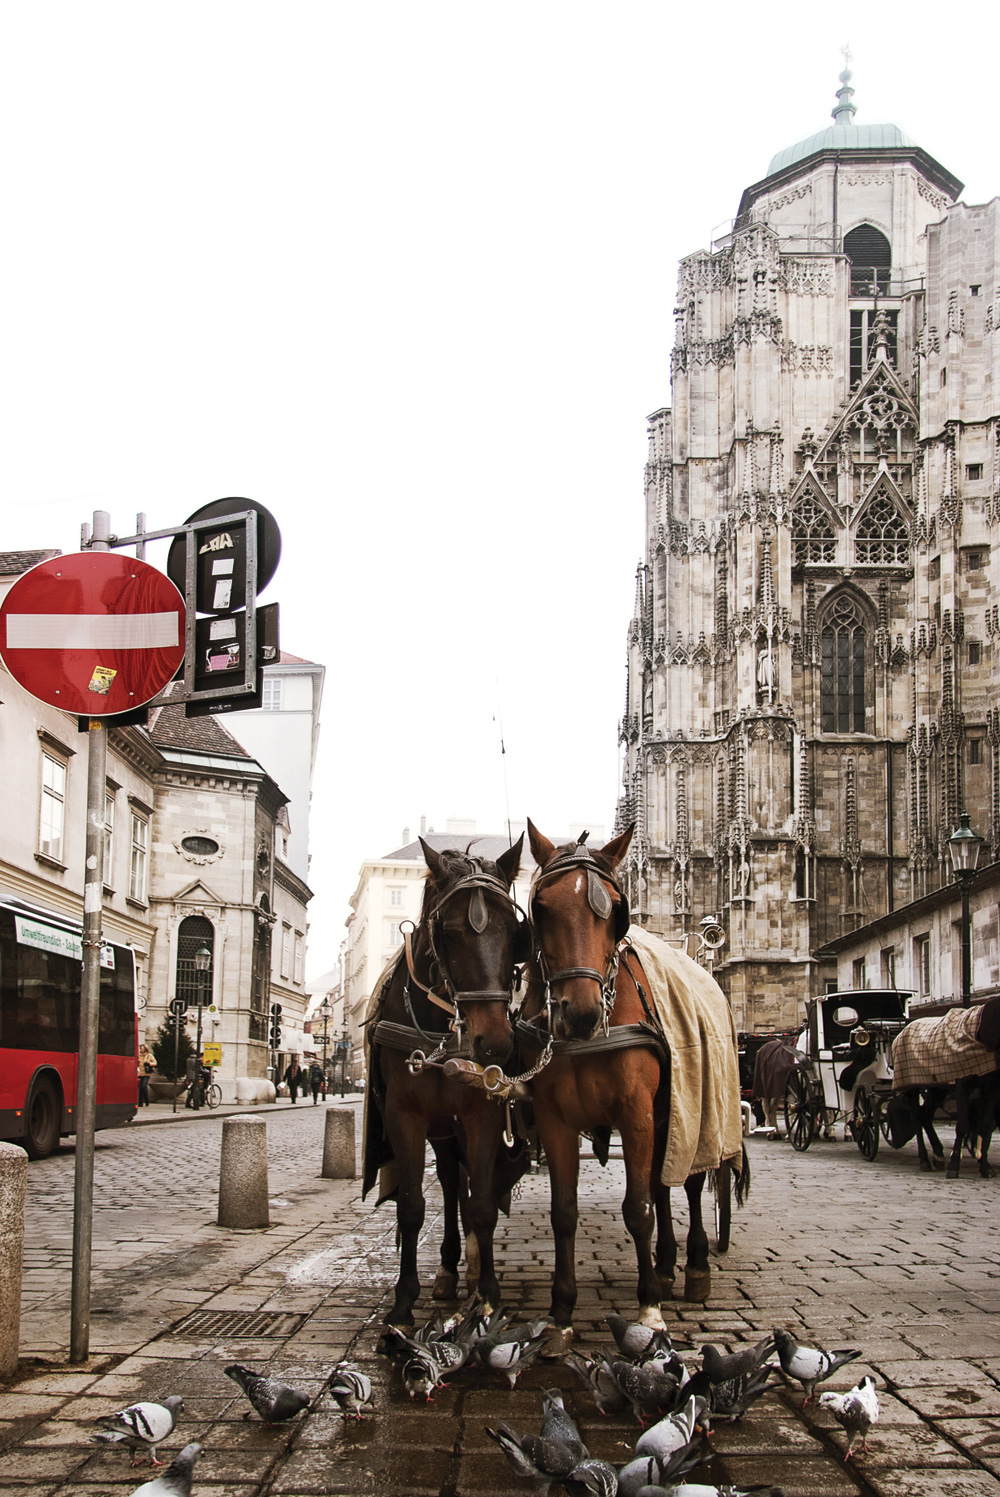 Two horses in the Stephansplatz, square at the geographical centre of Vienna